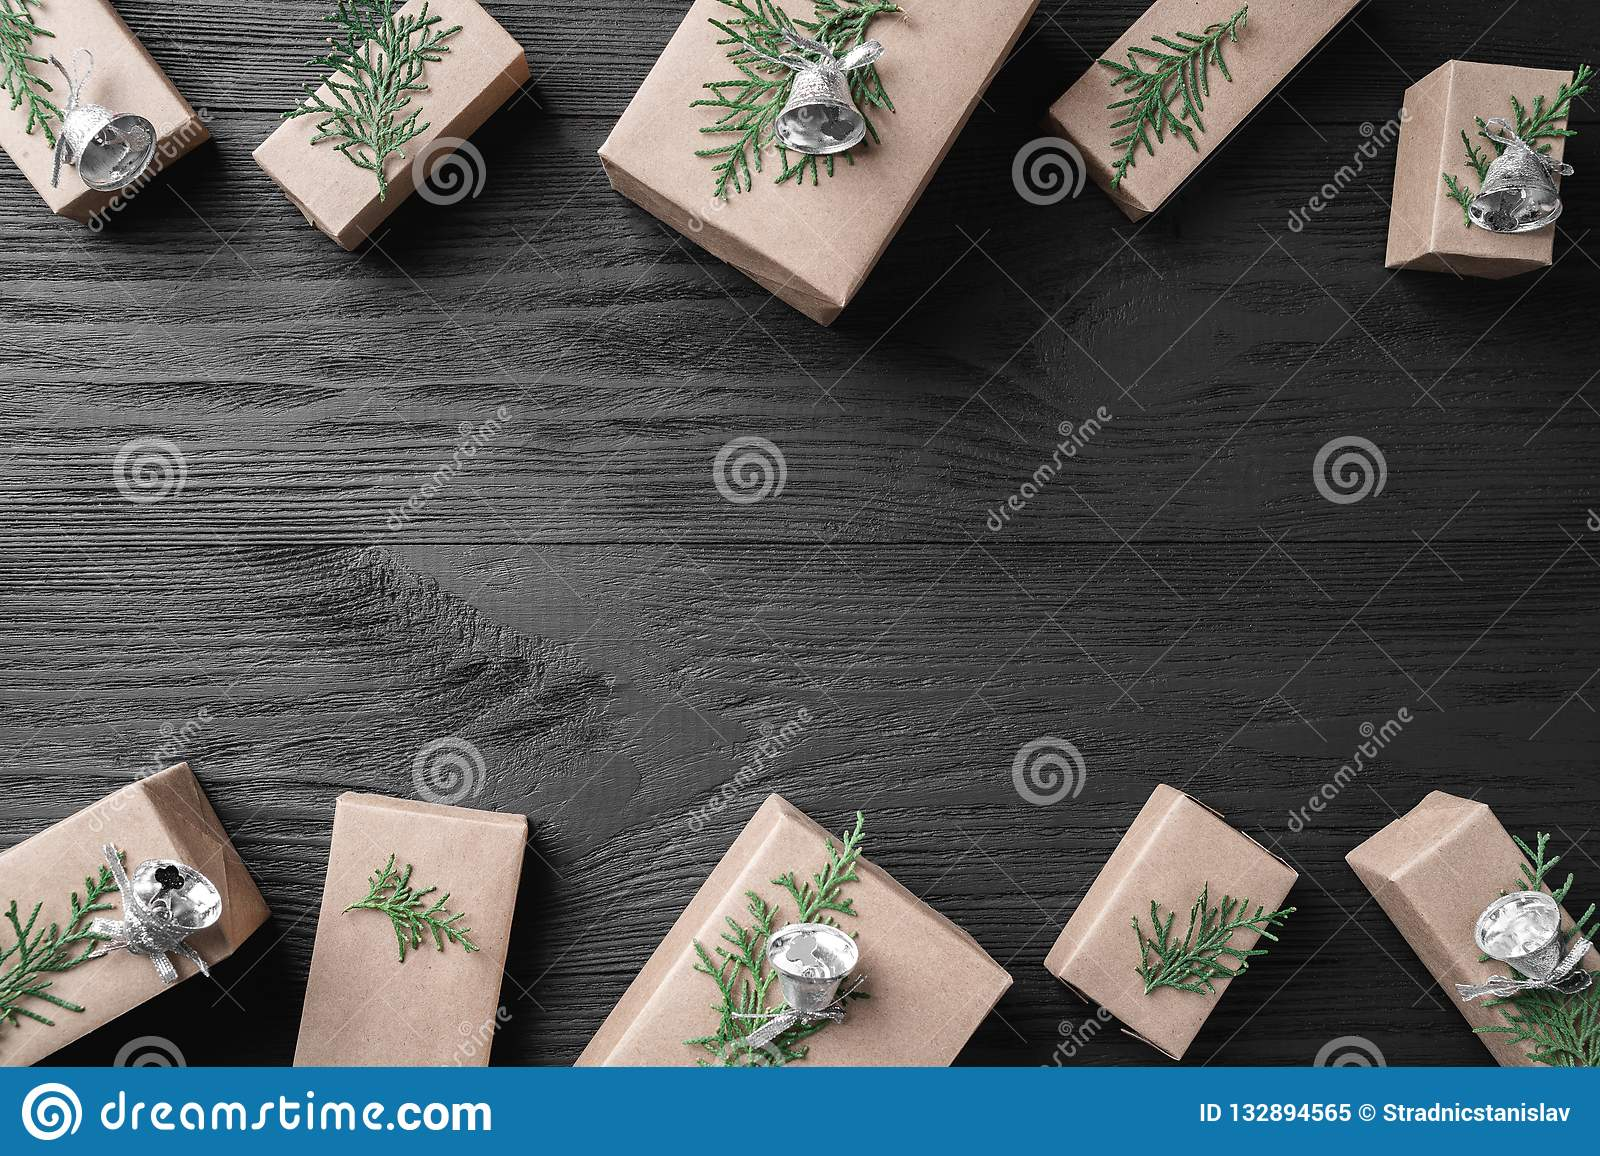 christmas card with gifts on a dark wooden rustic